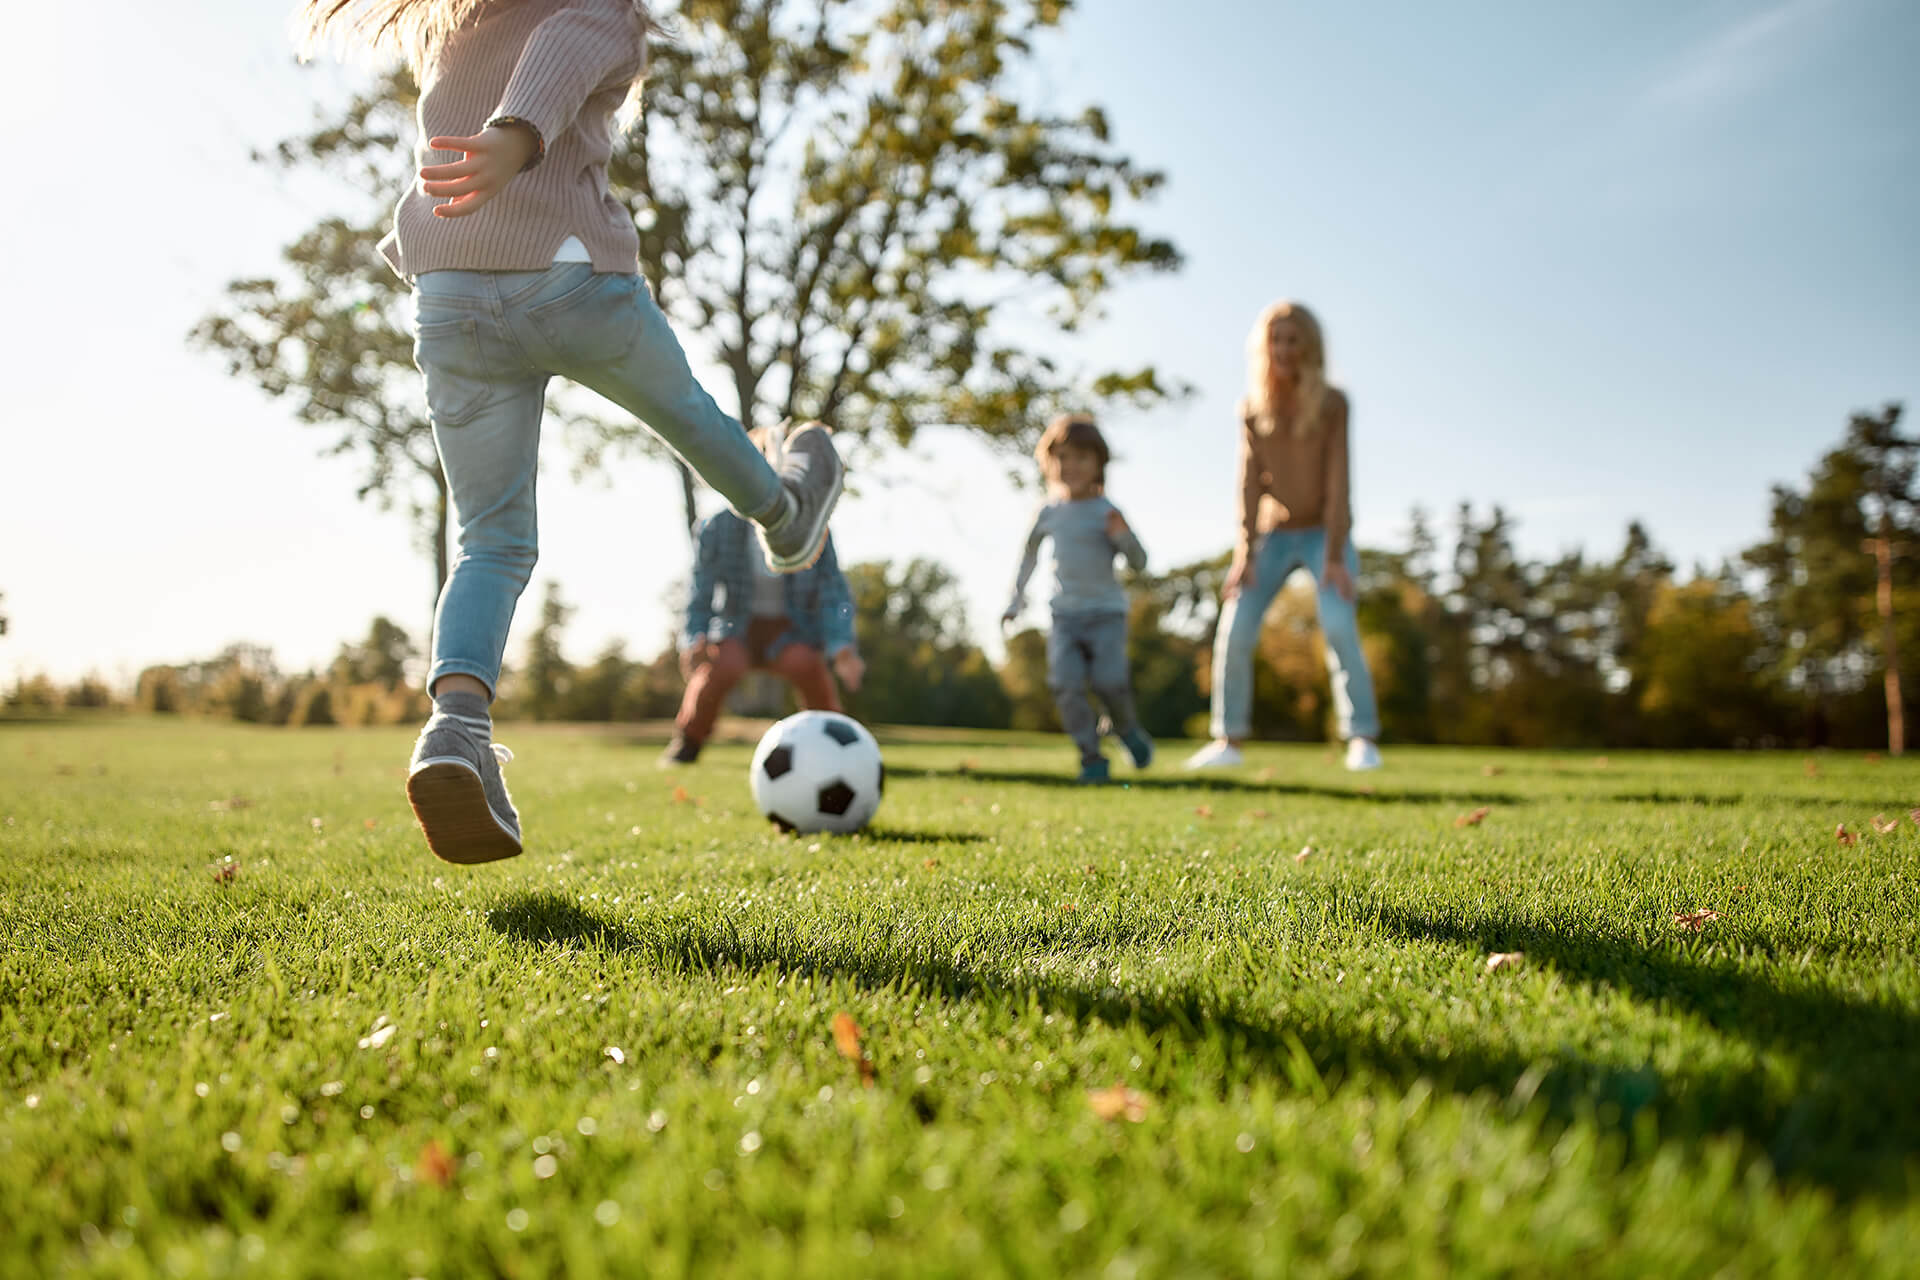 Kids outside playing soccer on a grass field